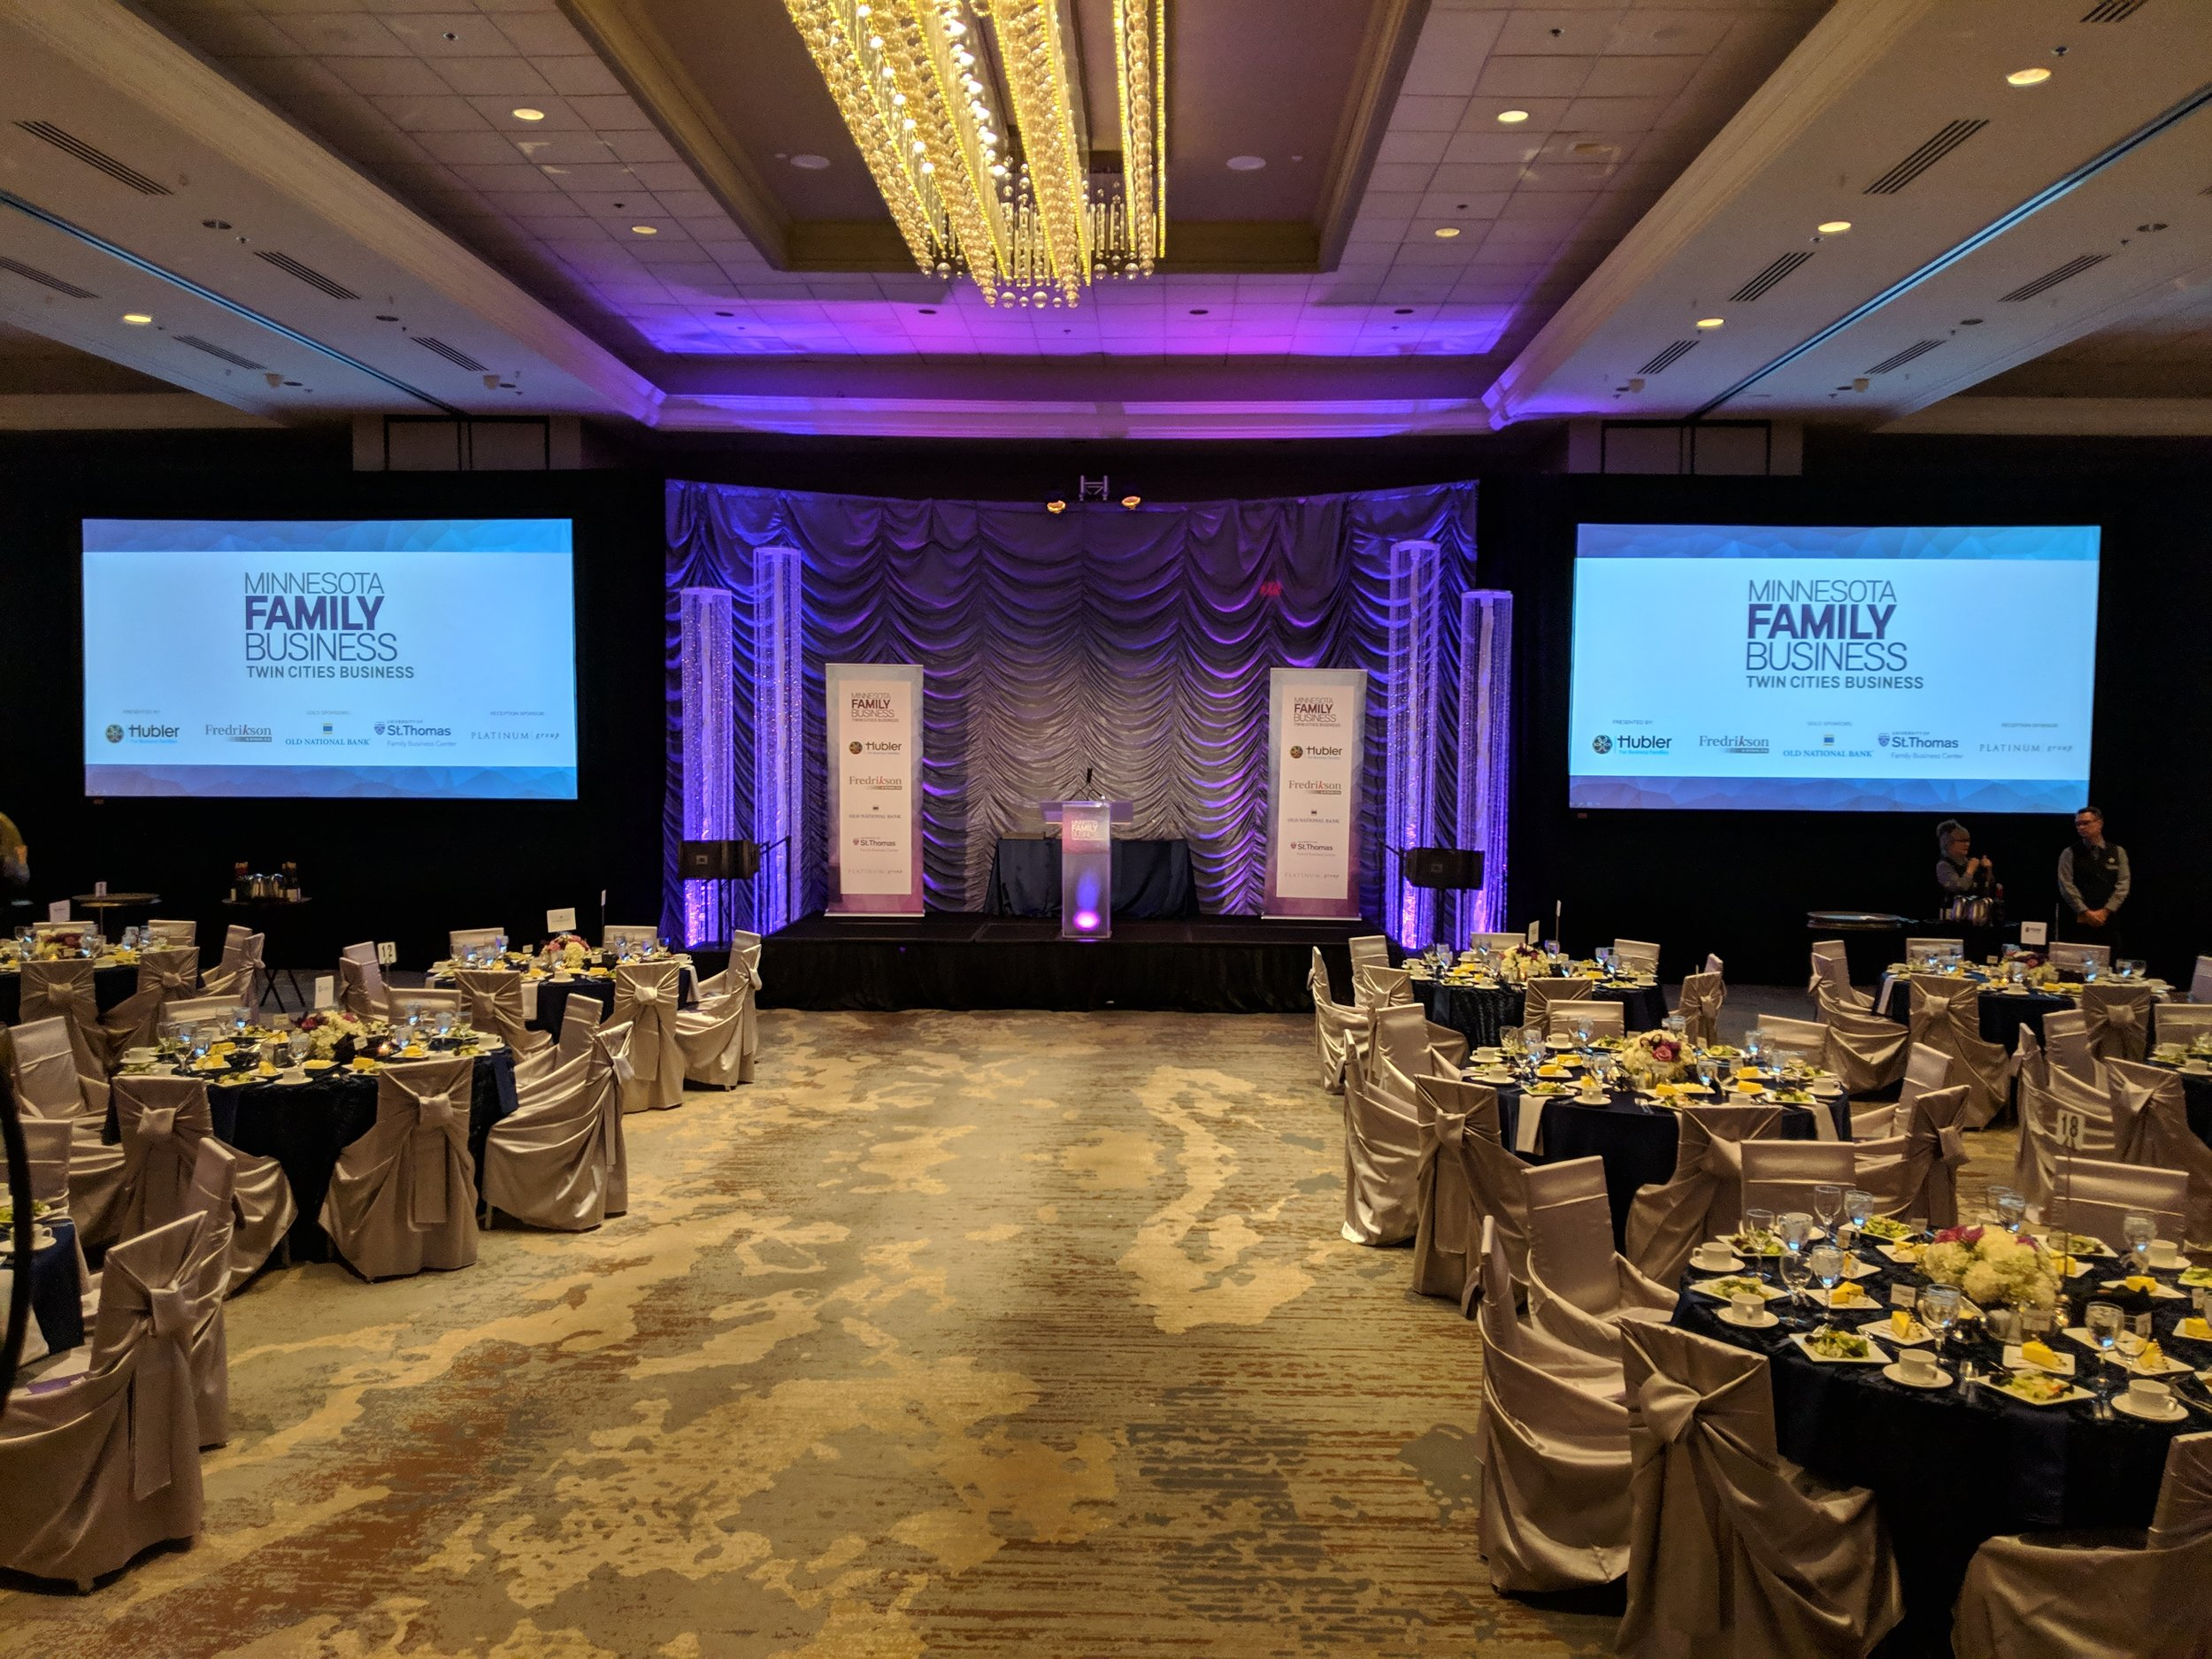 Picture of AV for You rental equipment at the Family Business Awards